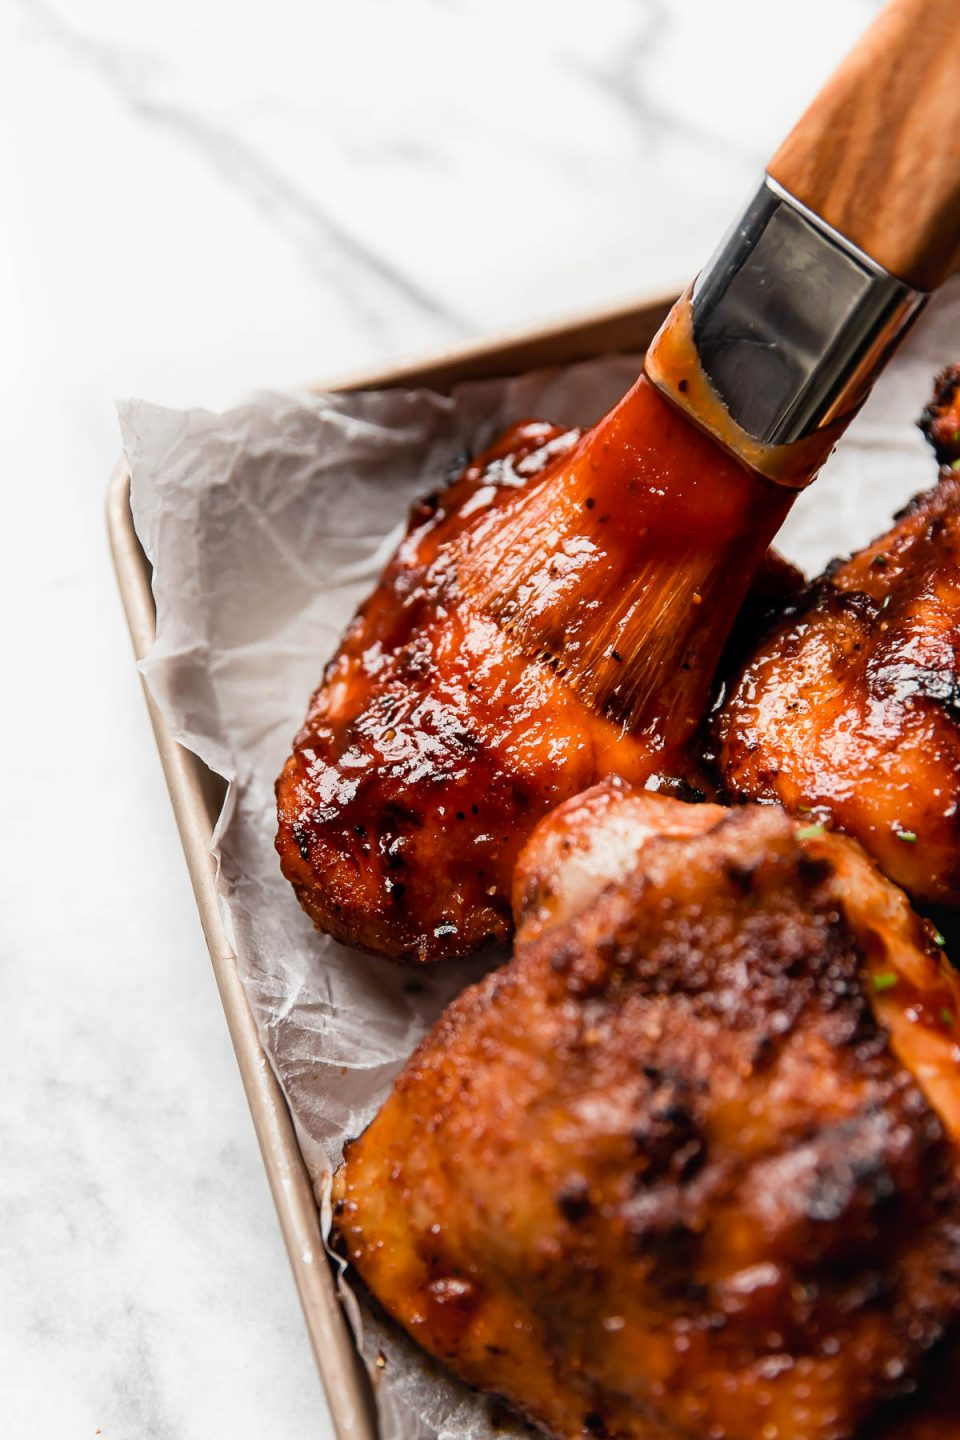 Grilled barbecue chicken thighs getting brushed with BBQ sauce.